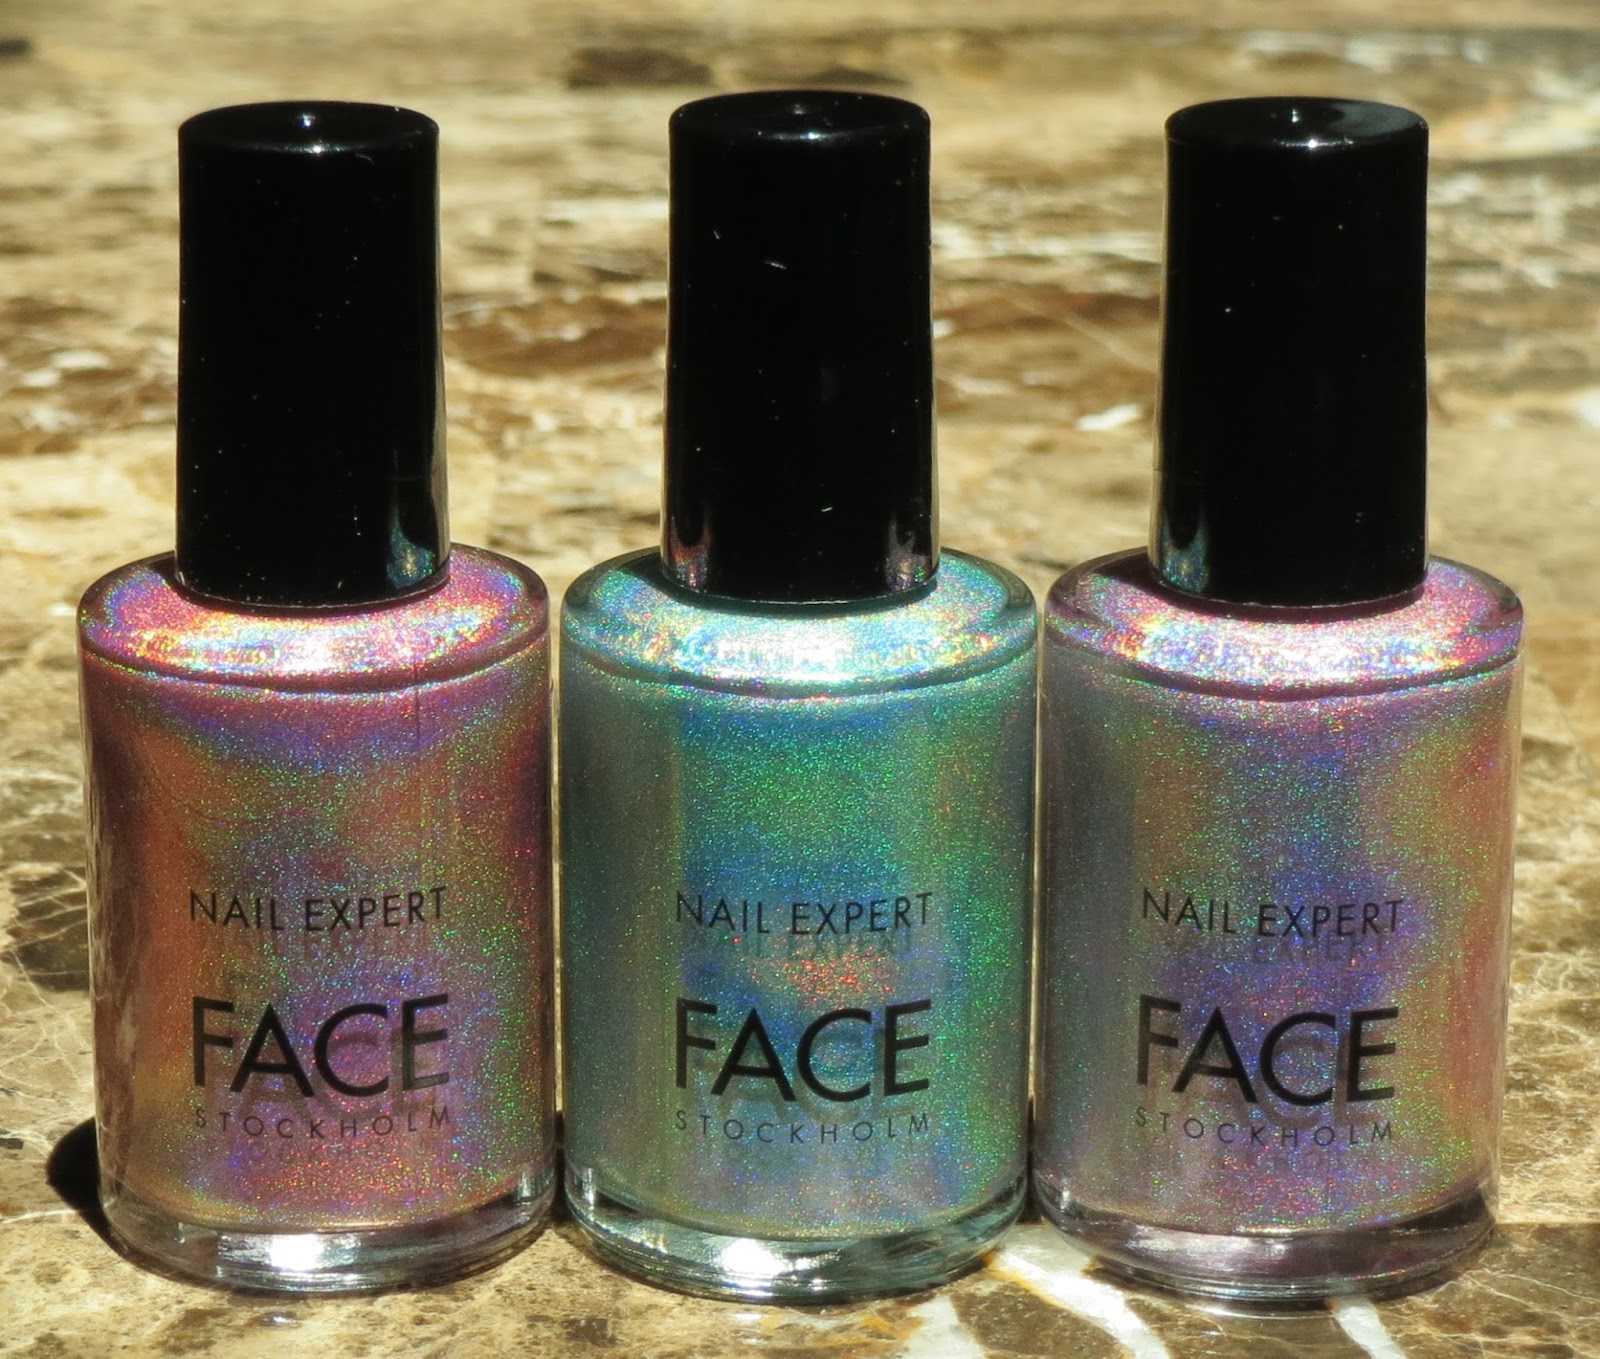 Blue Skies for Me Please: FACE Stockholm Holographic Nail Polish Haul